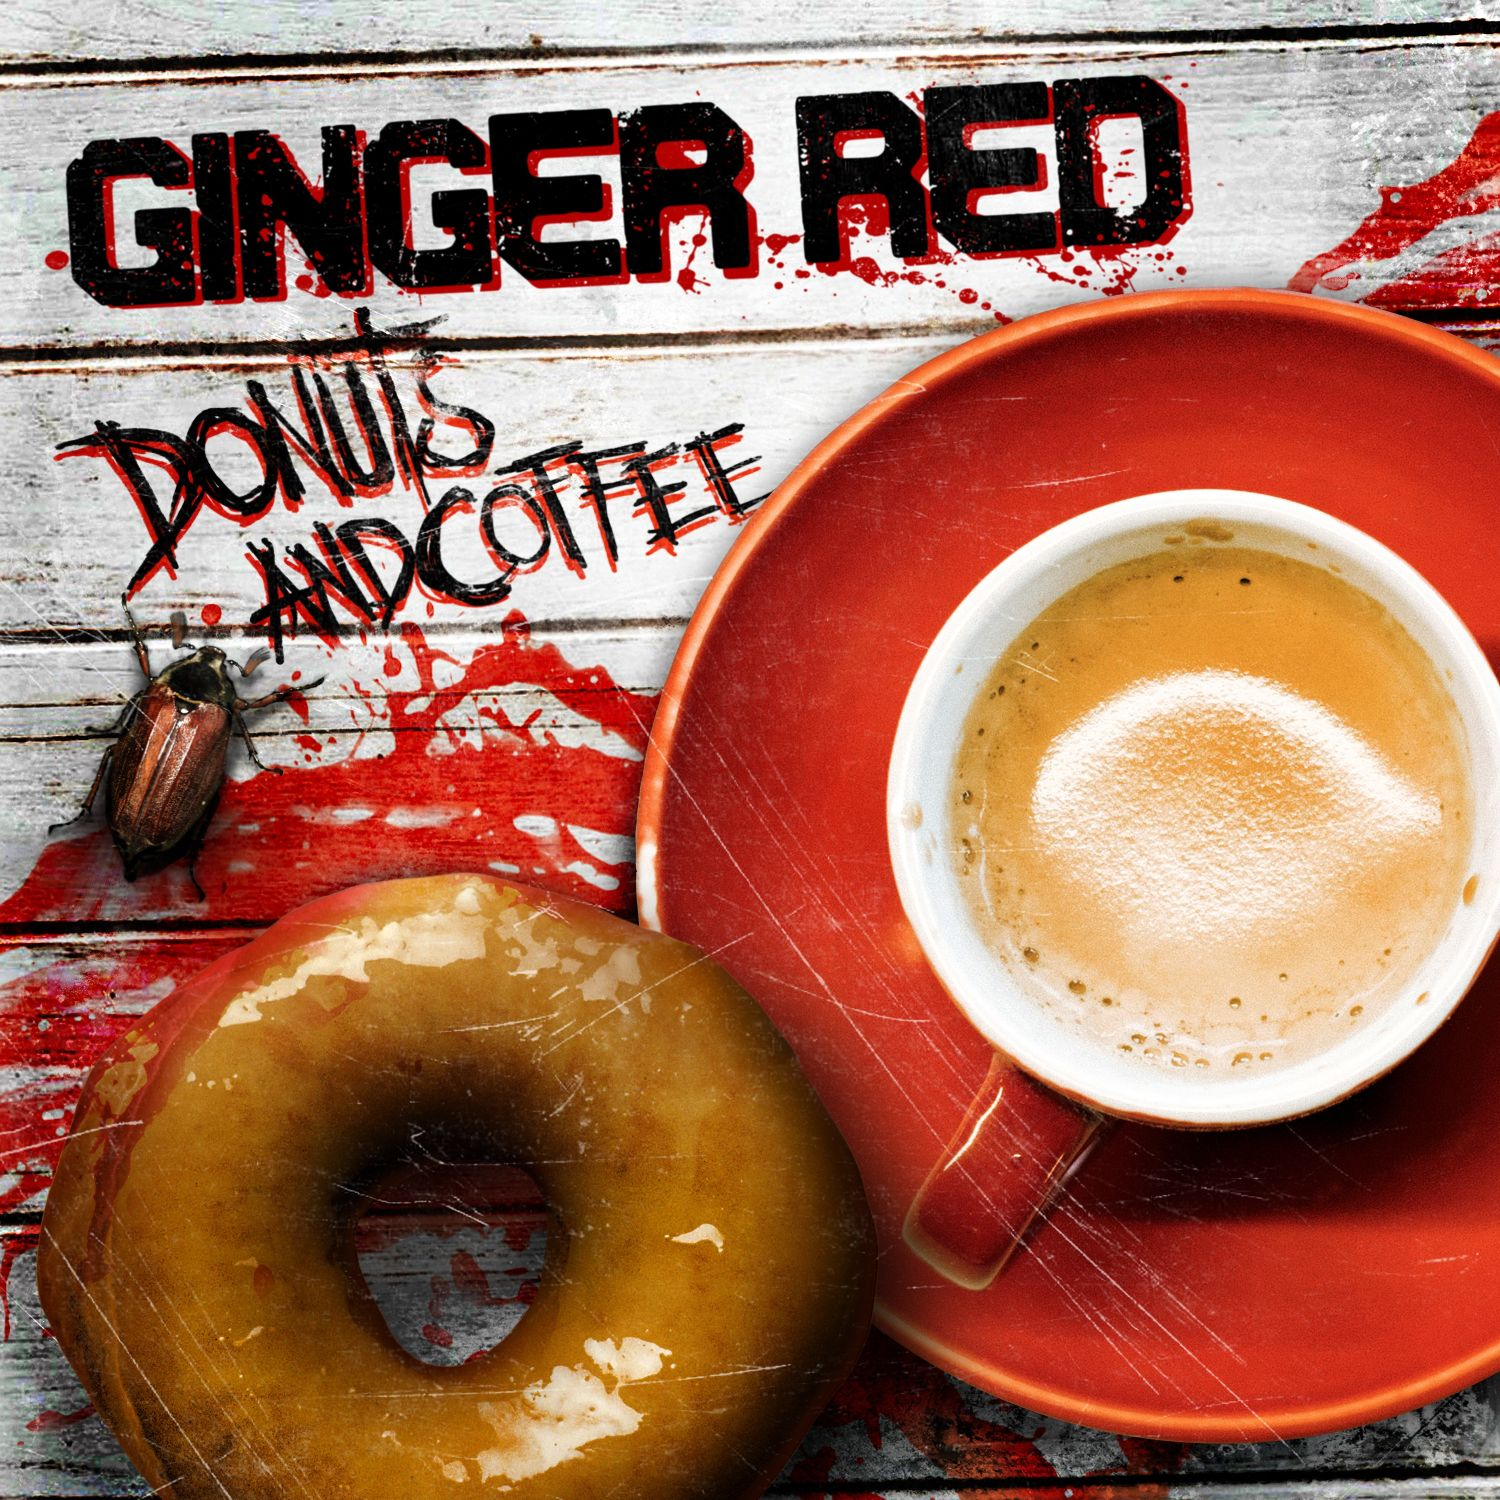 Ginger Red - Donuts And Coffee - Artwork